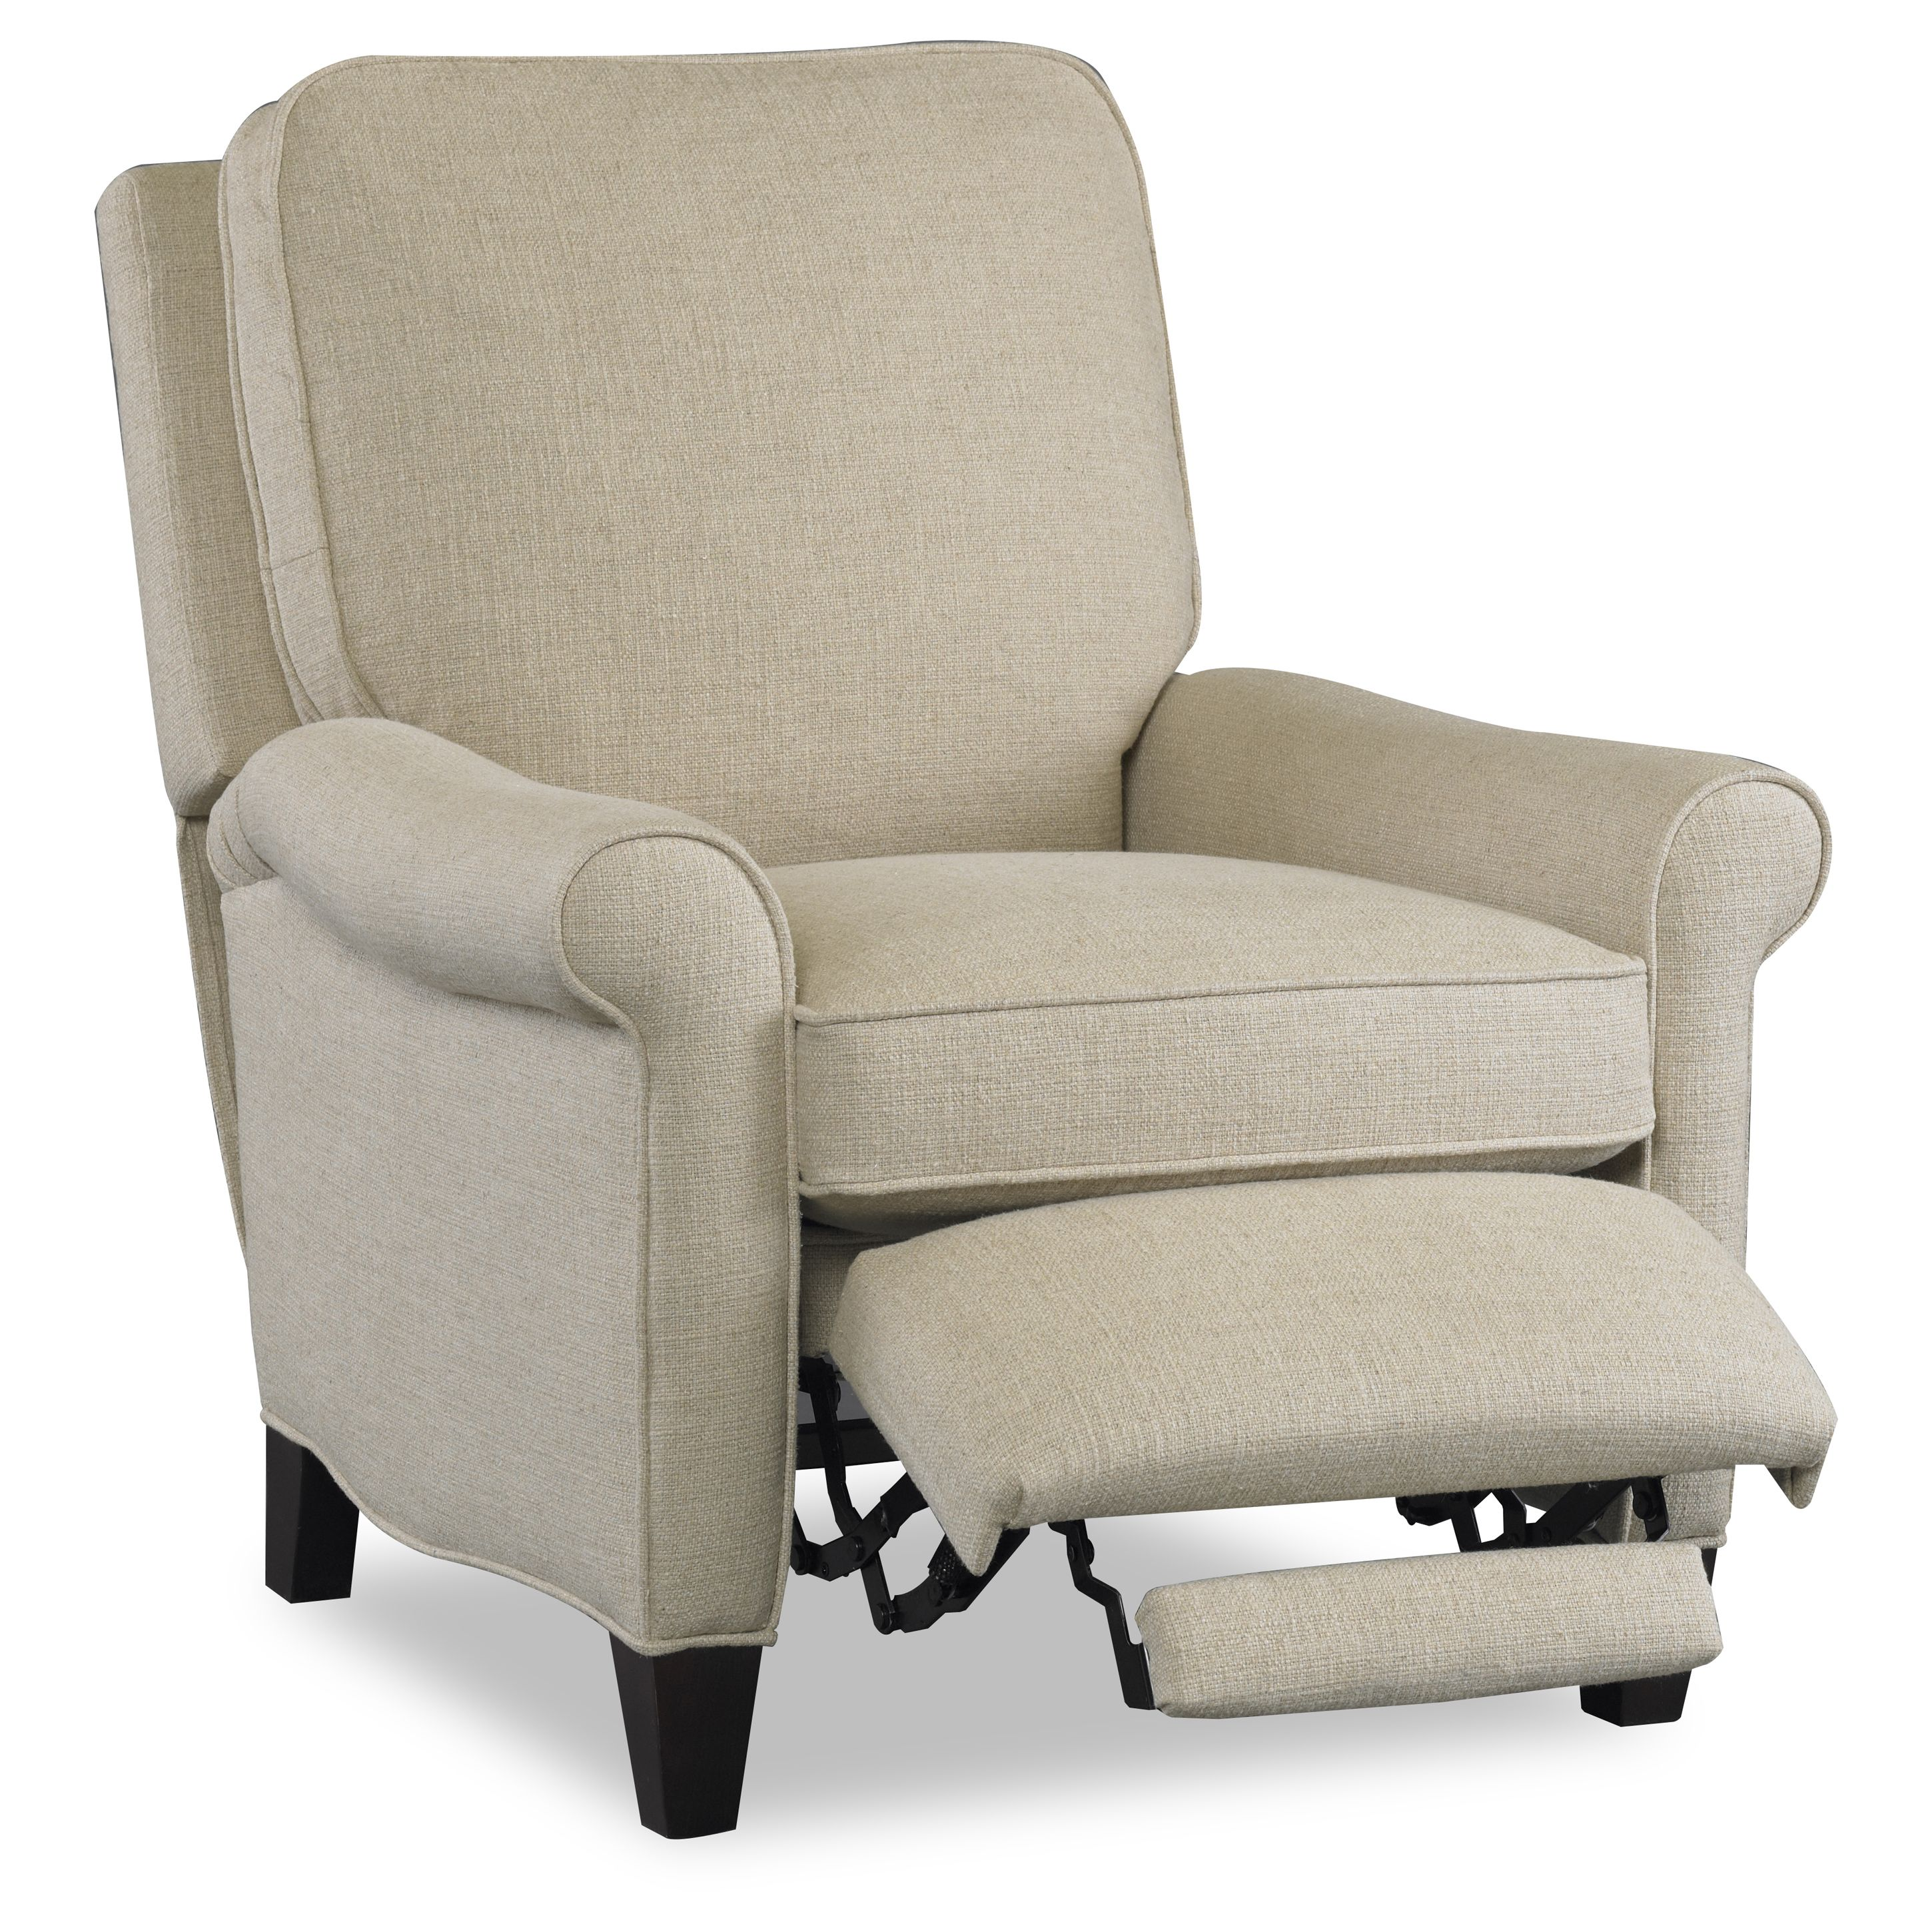 Recliner Jordan Furniture Double Reclining Chairs This Way M Can Lay Back And We Do Not